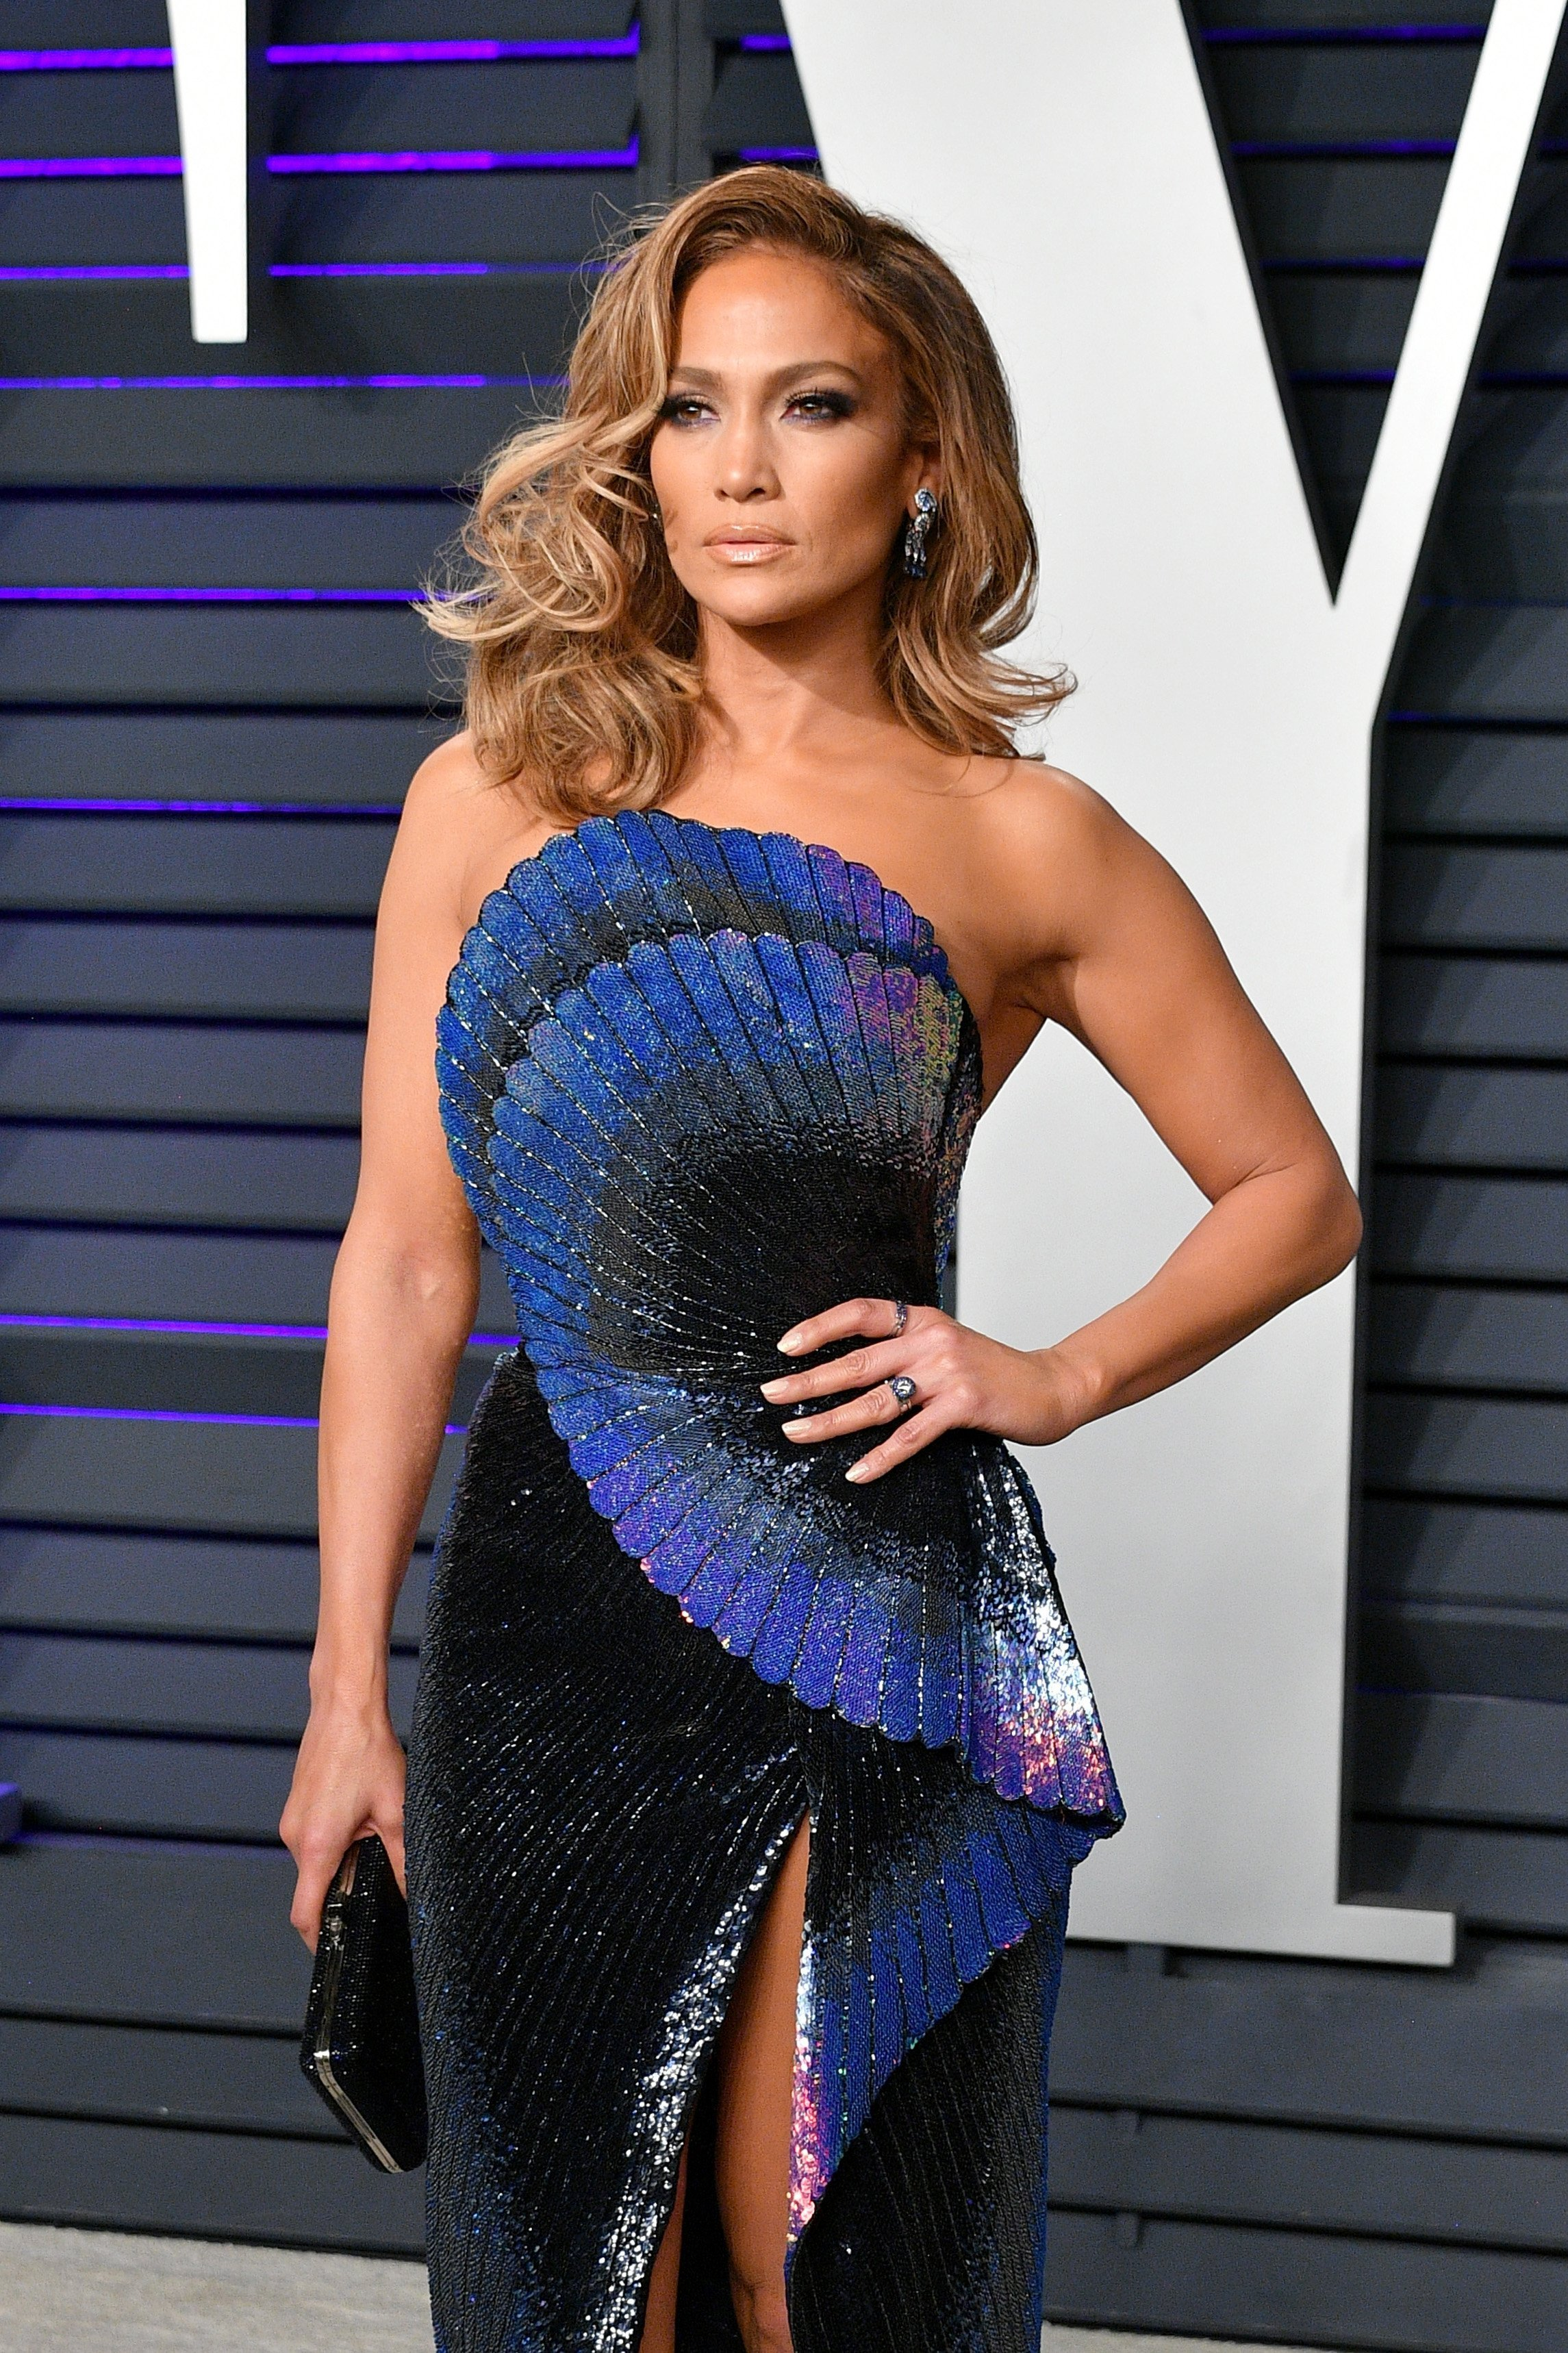 Jennifer Lopez at the 2019 Vanity Fair Oscars party | Photo: Getty Images